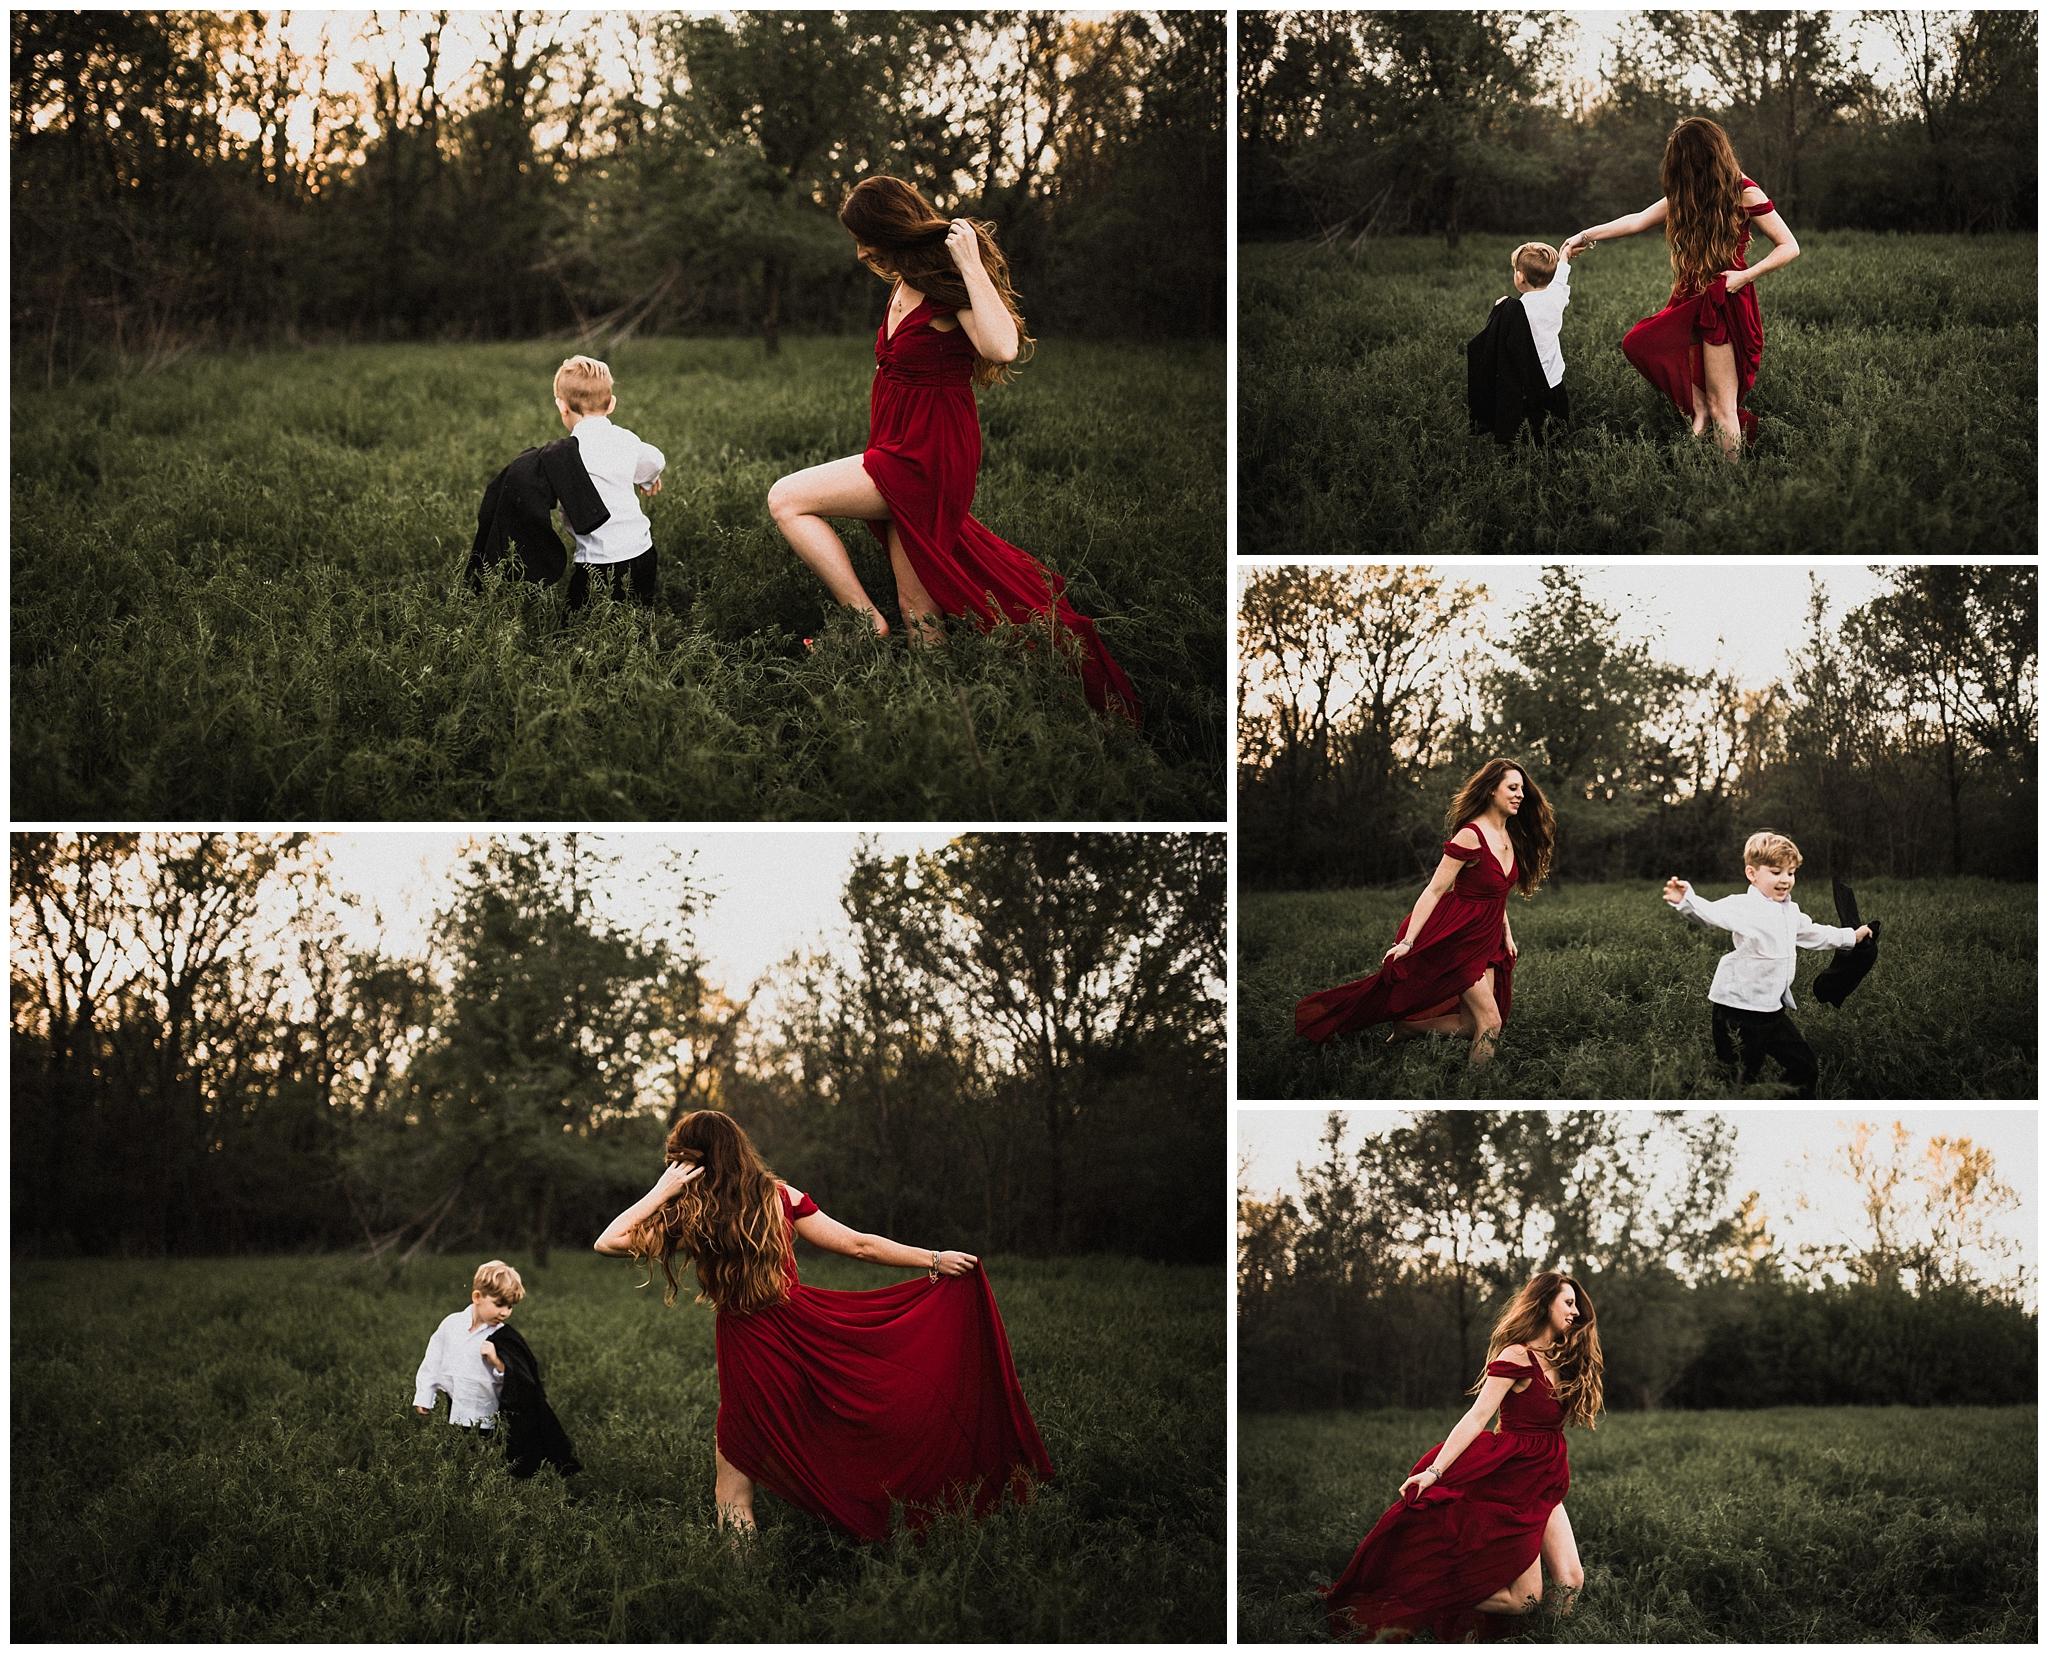 twyla jones photography | south florida family photographer | mother son session in a meadow-20160420-_TDJ4141.jpg